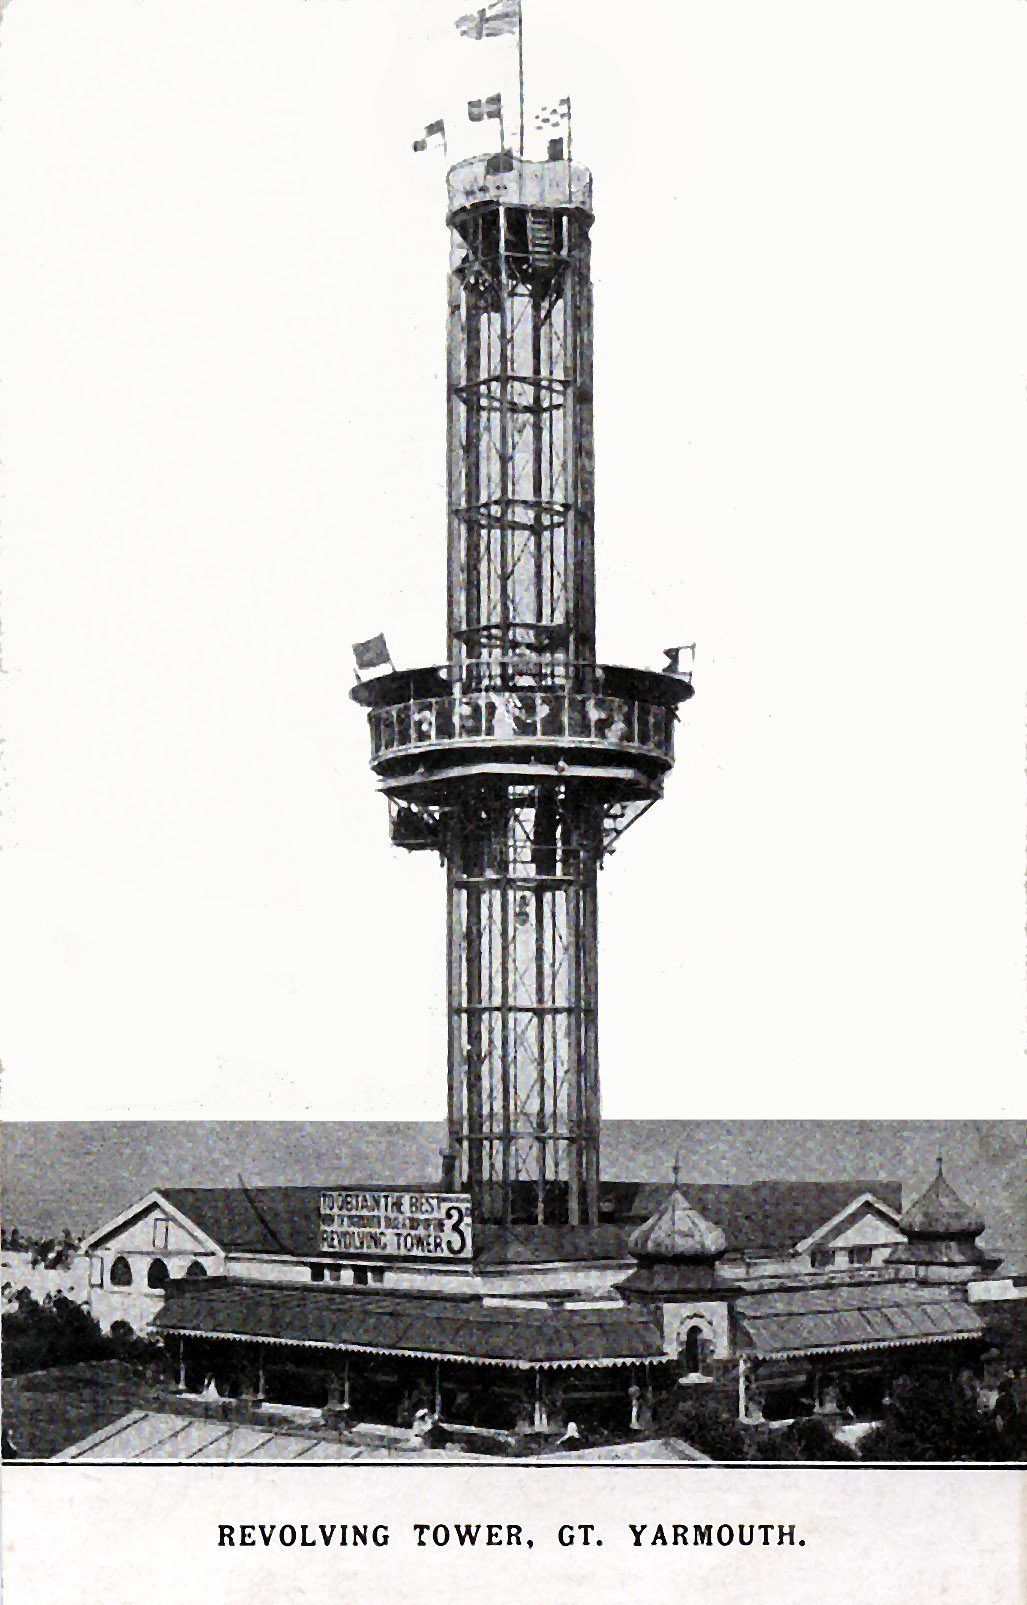 The Revolving Tower